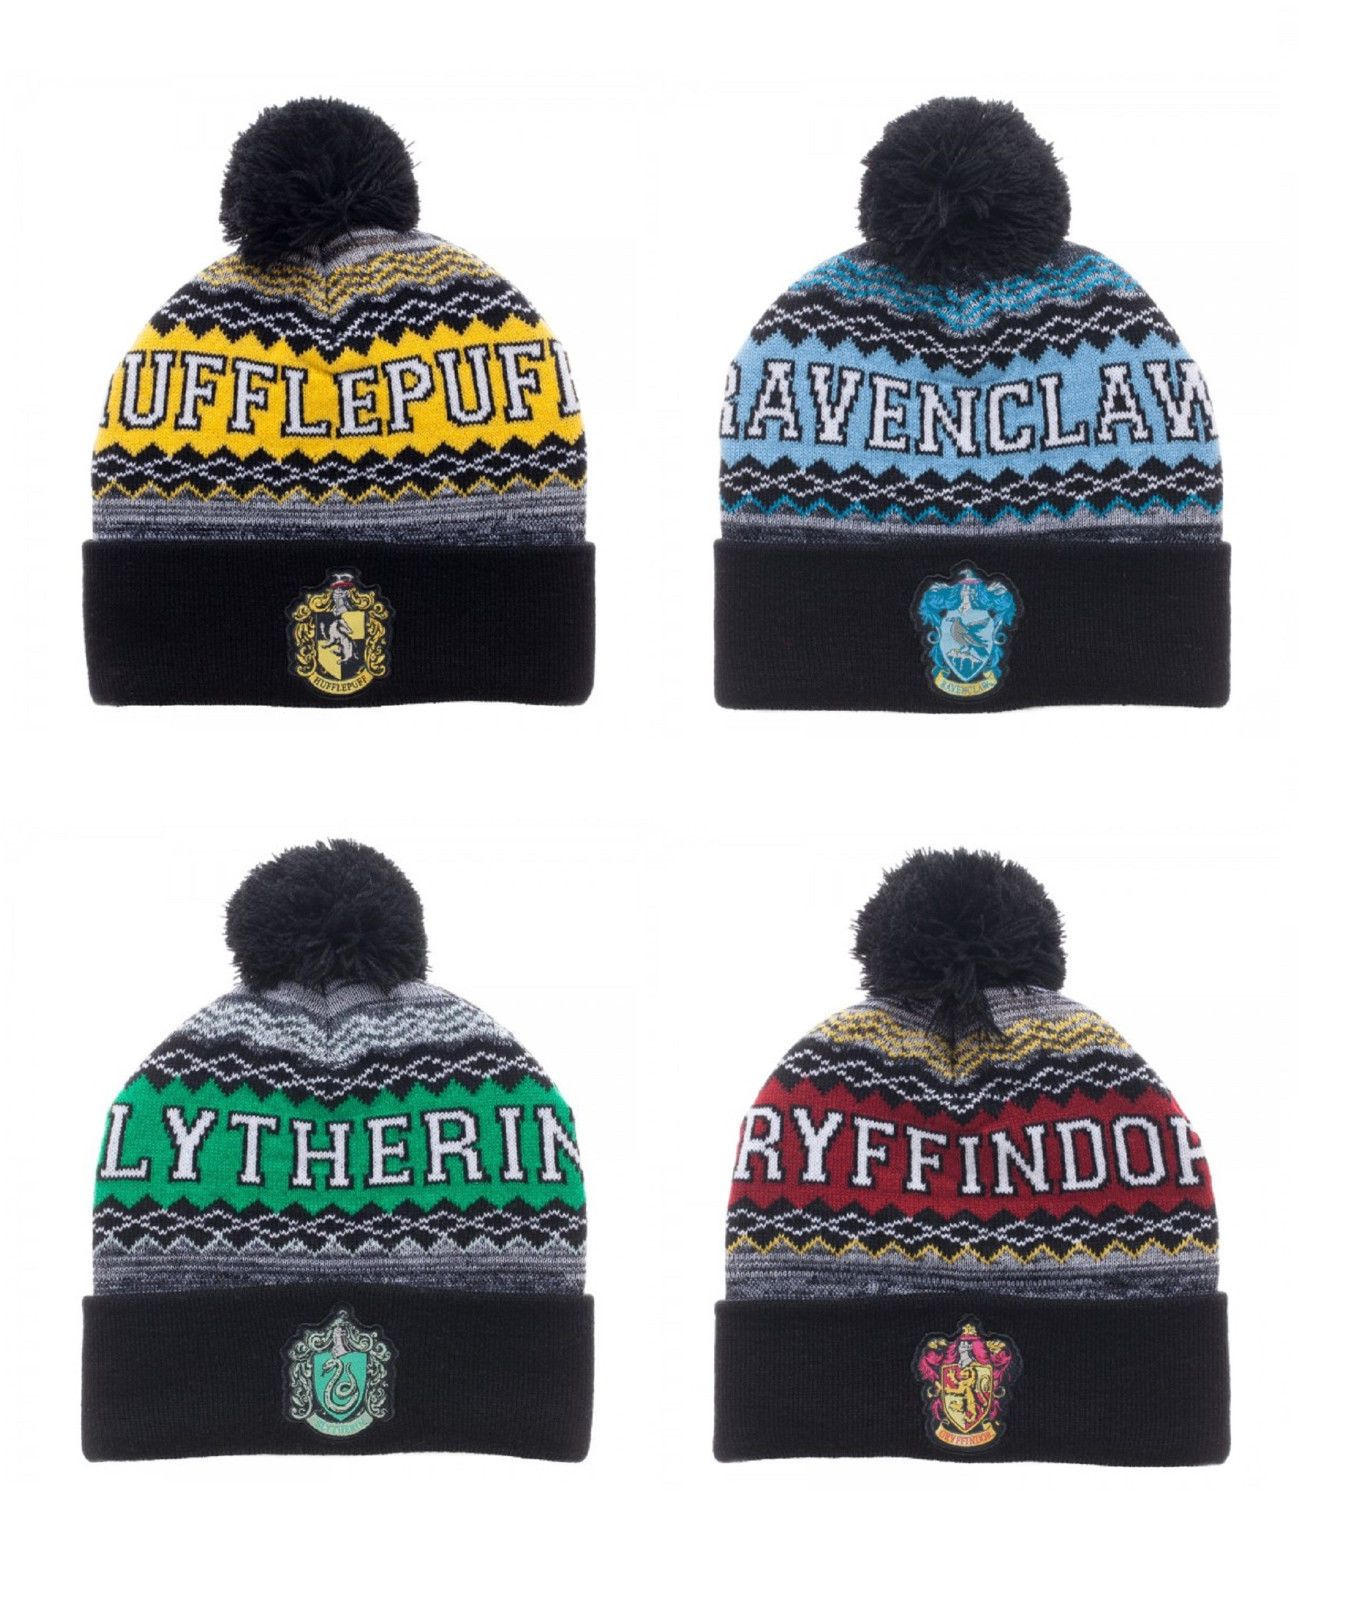 d713b83d6b2dc Adult size Harry Potter Knit Cuff Pom Beanie - 4 Houses fnt ...